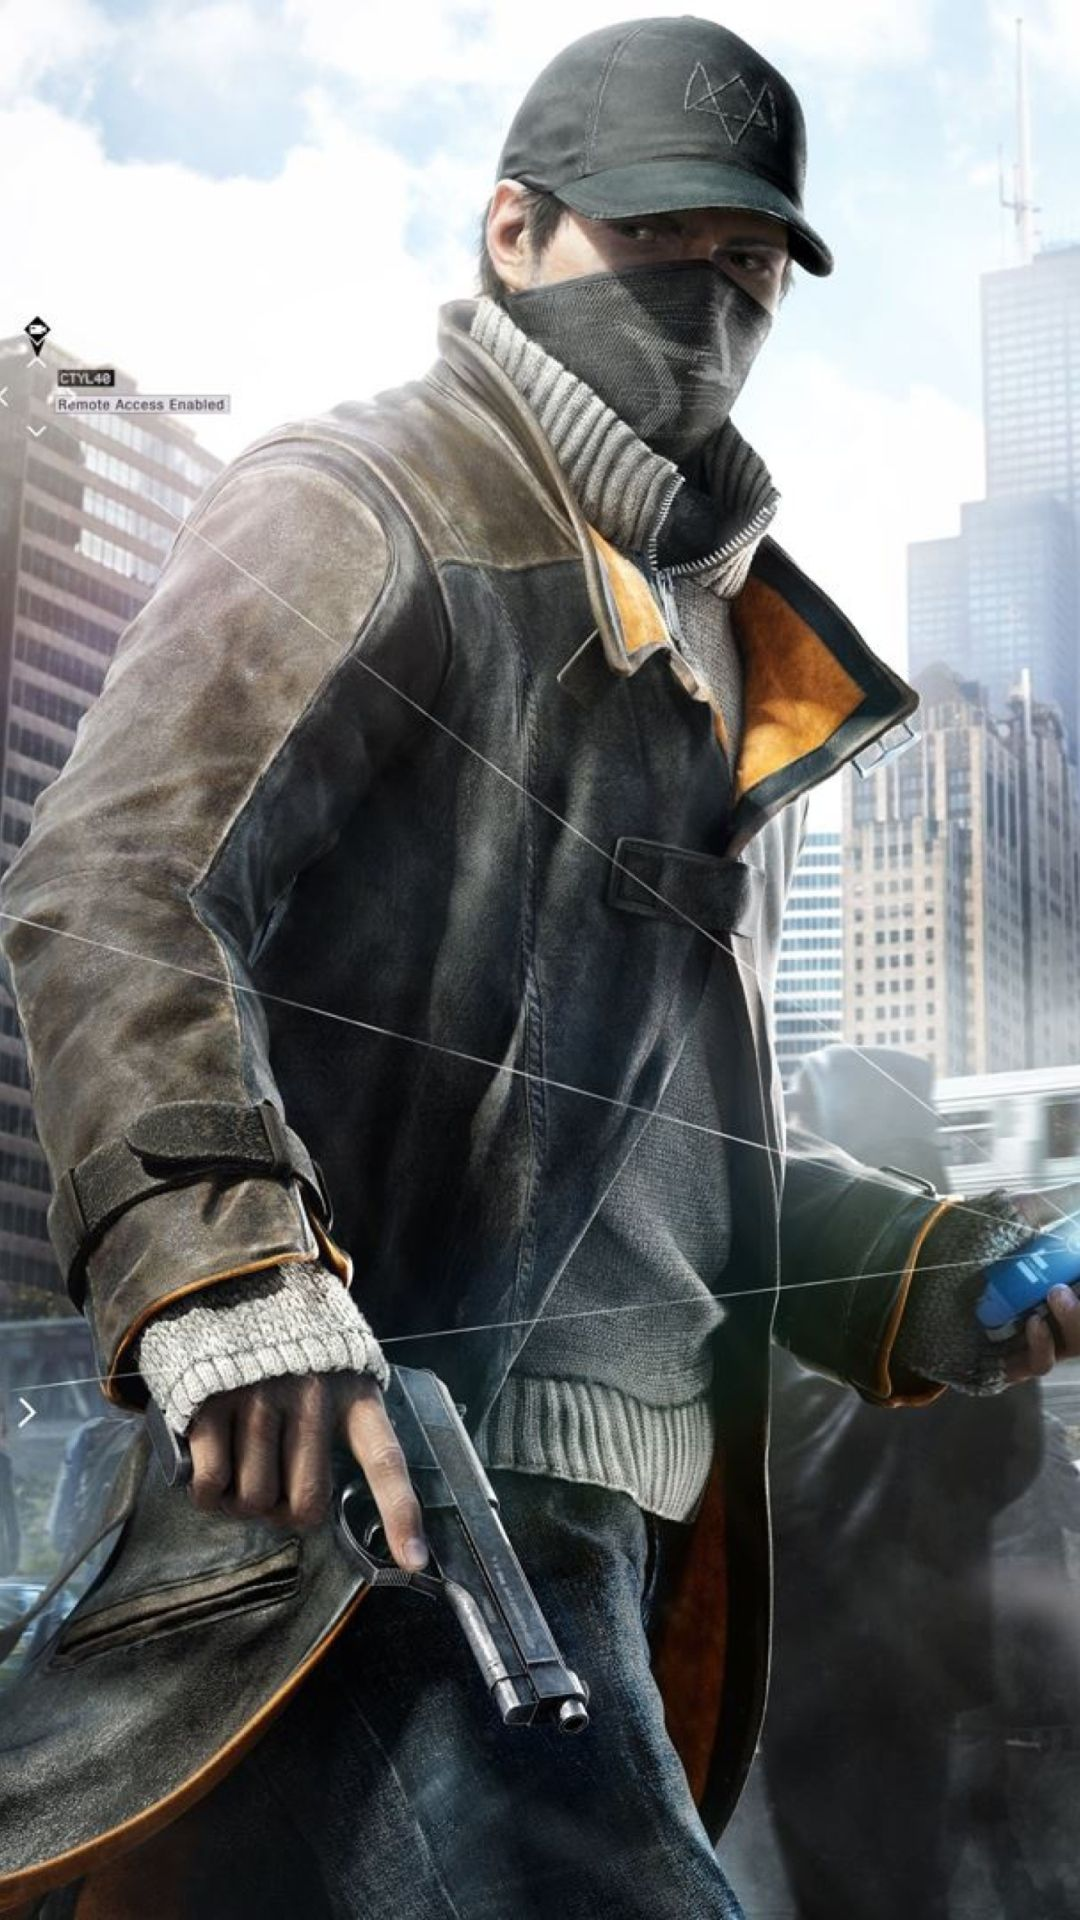 Aiden Pearce in Watch Dogs wallpapers (82 Wallpapers) - HD ...